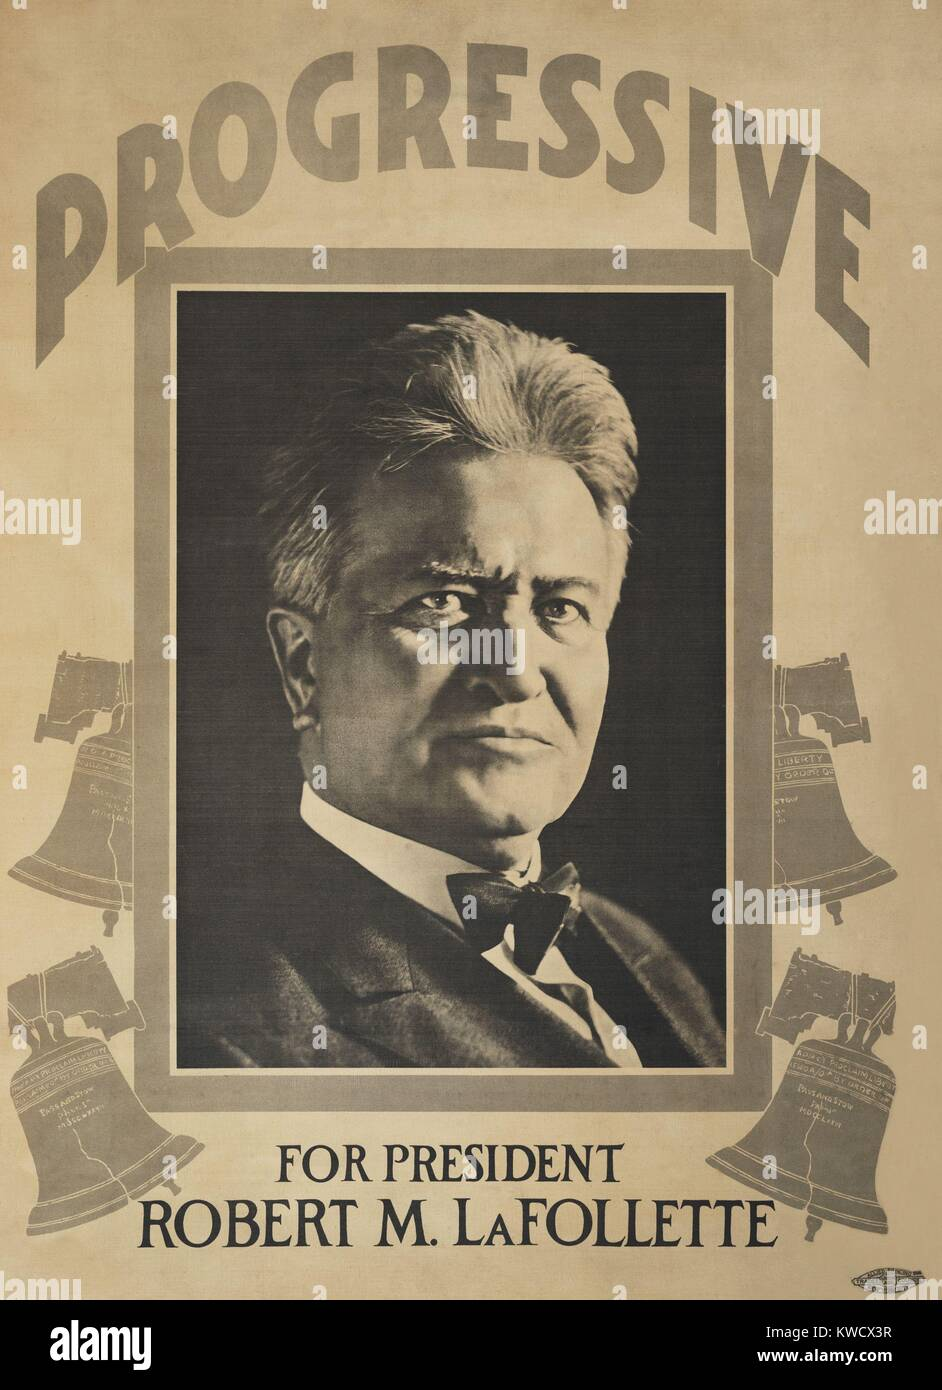 Robert M. La Follette, Progressive Party campaign poster for the 1924 Presidential election. (BSLOC 2017 2 141) Stock Photo